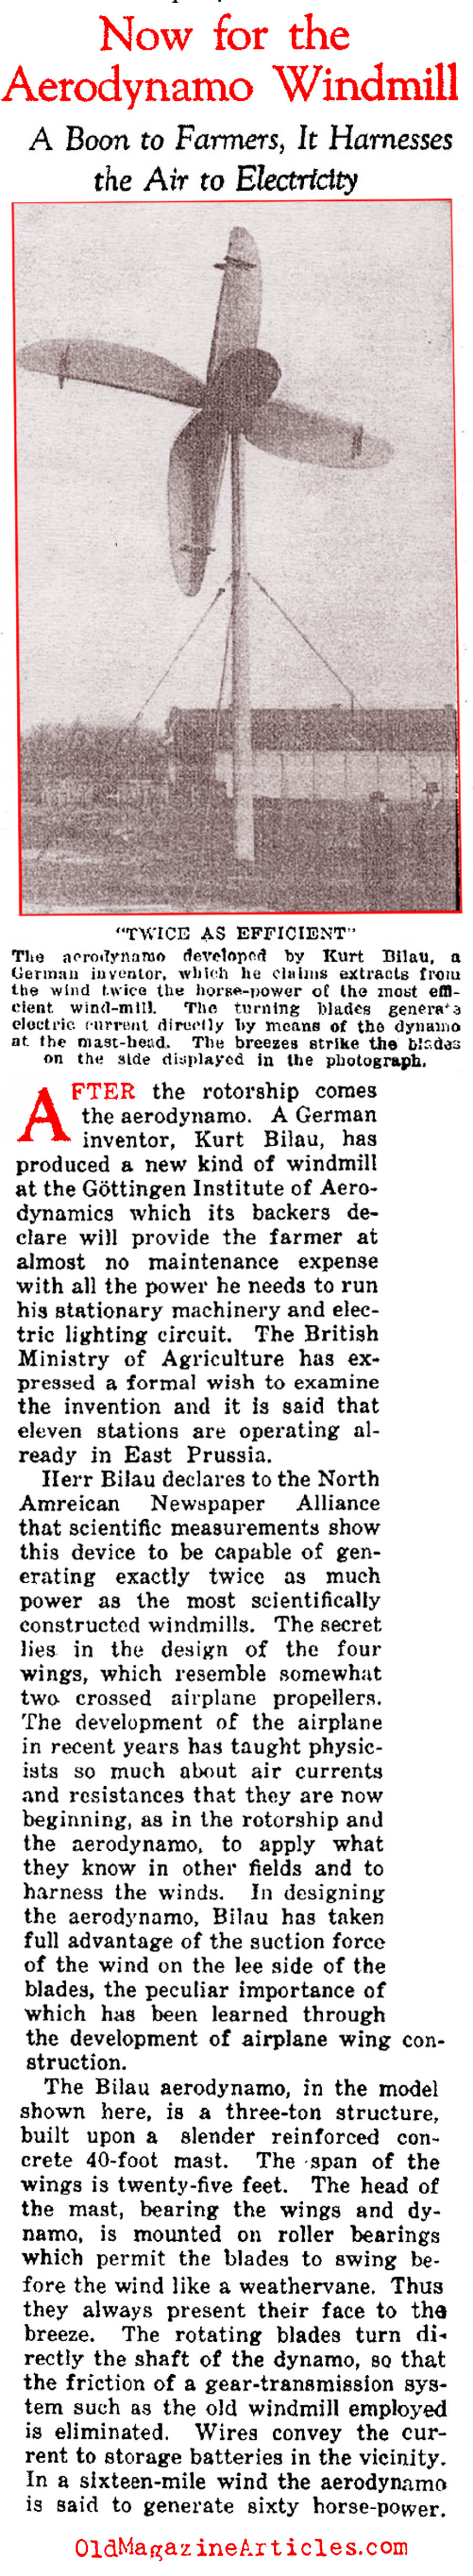 Recognizing the Potential of Wind Power (Current Opinion, 1925)